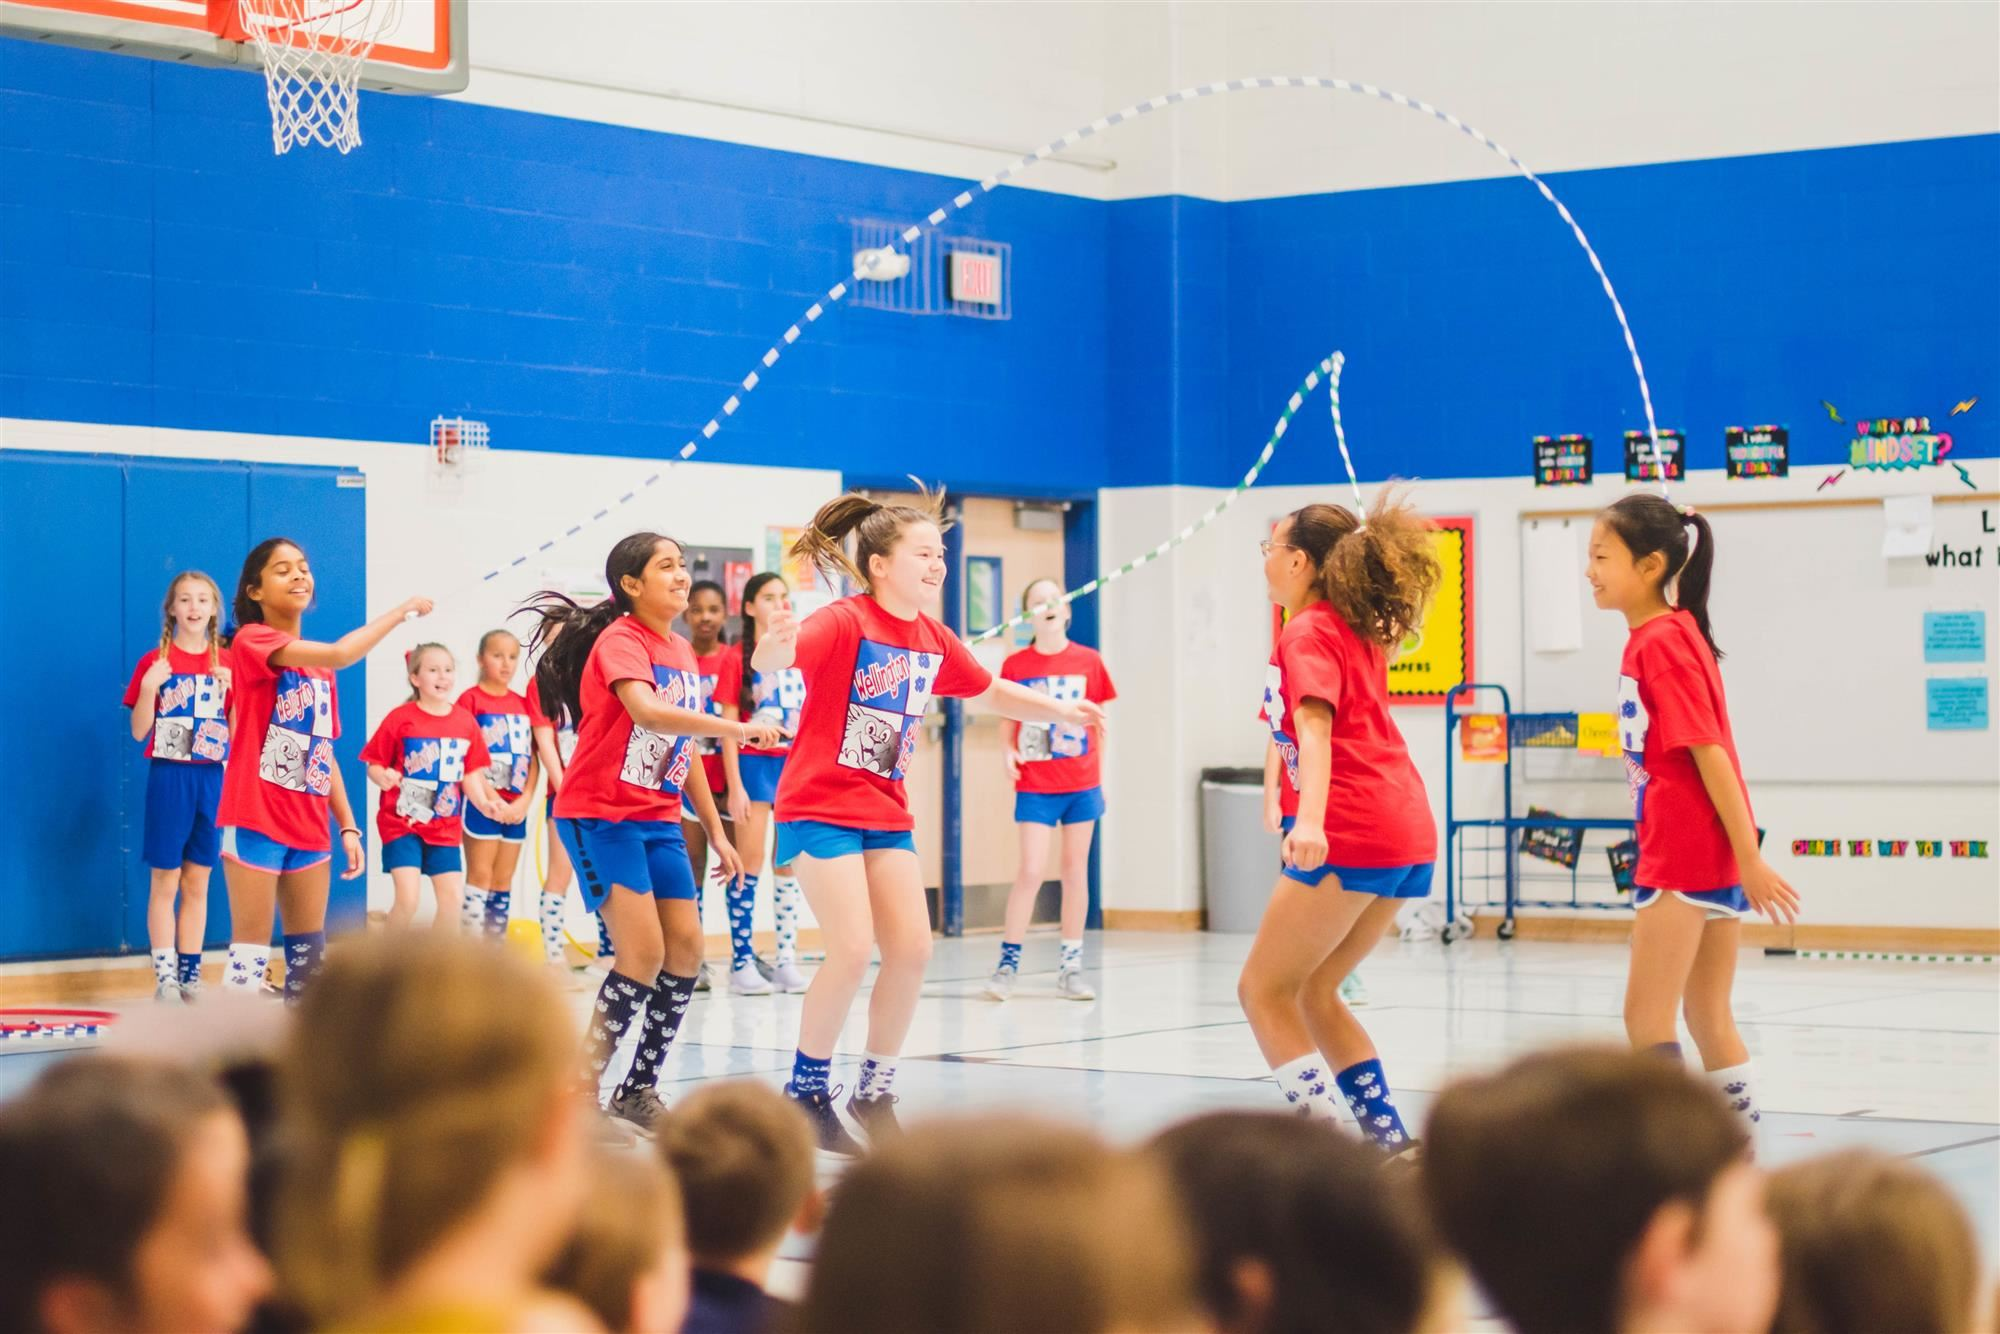 jump rope team performs